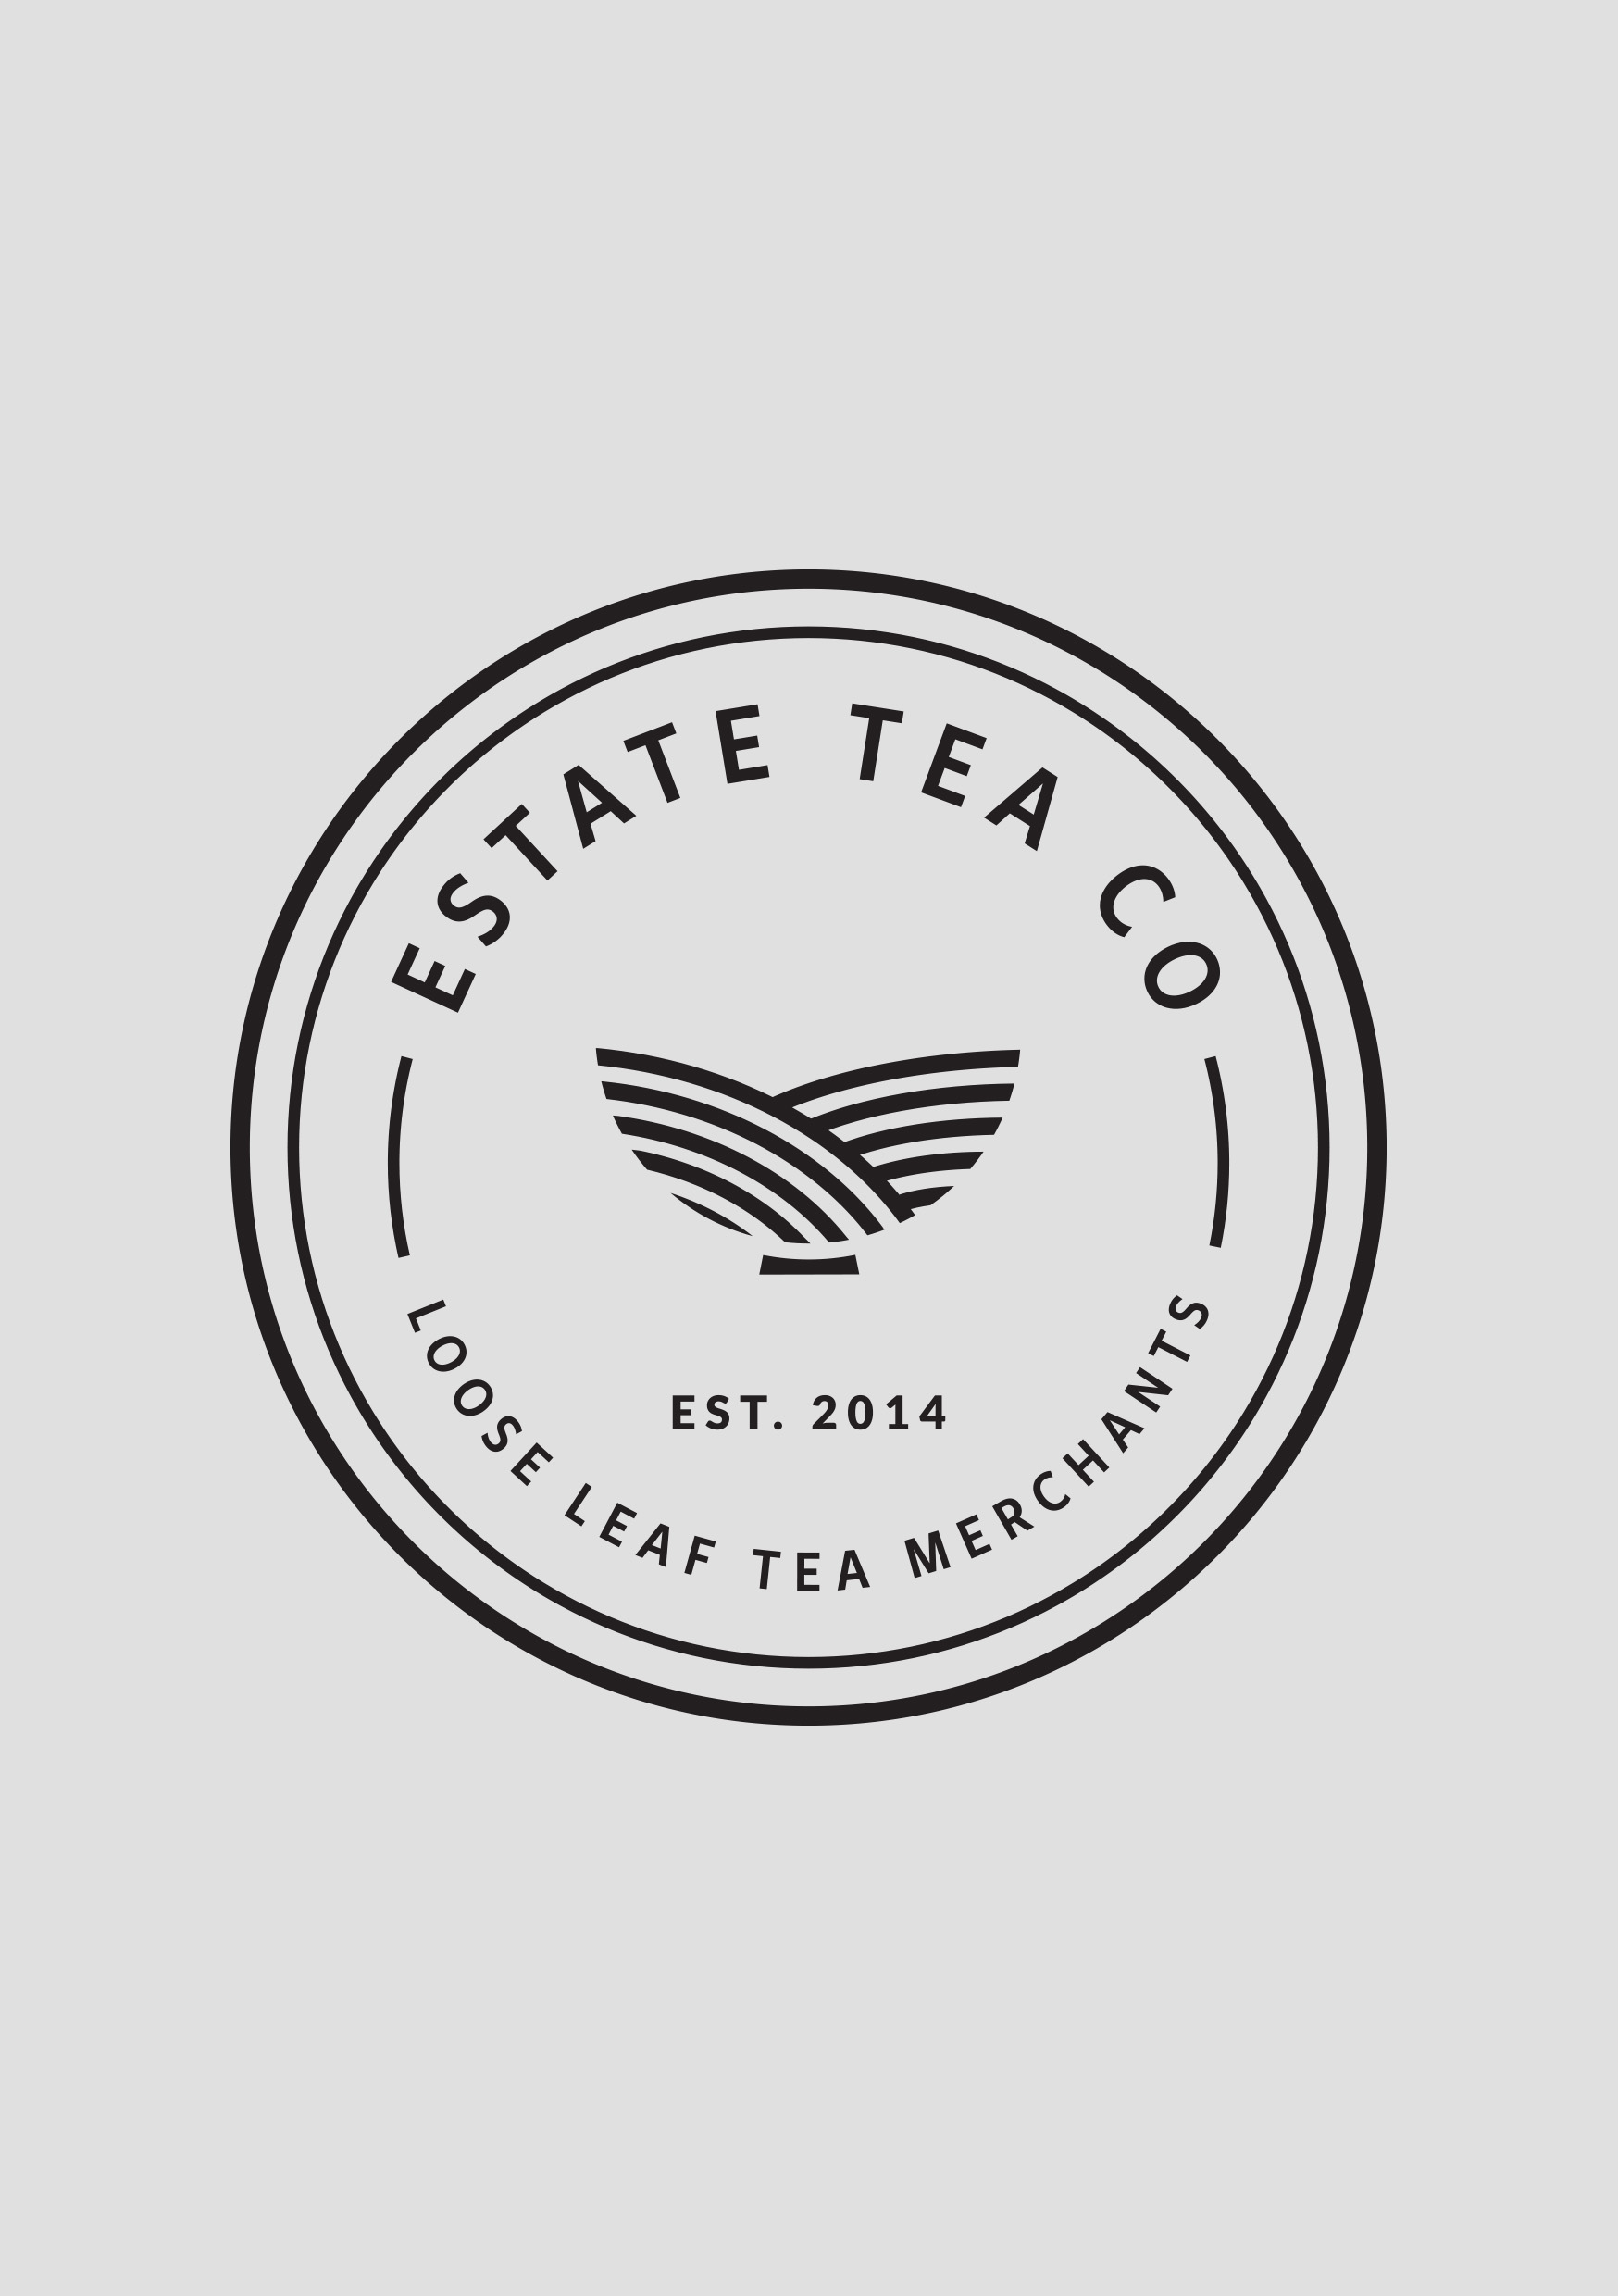 Estate Tea Co / Branding